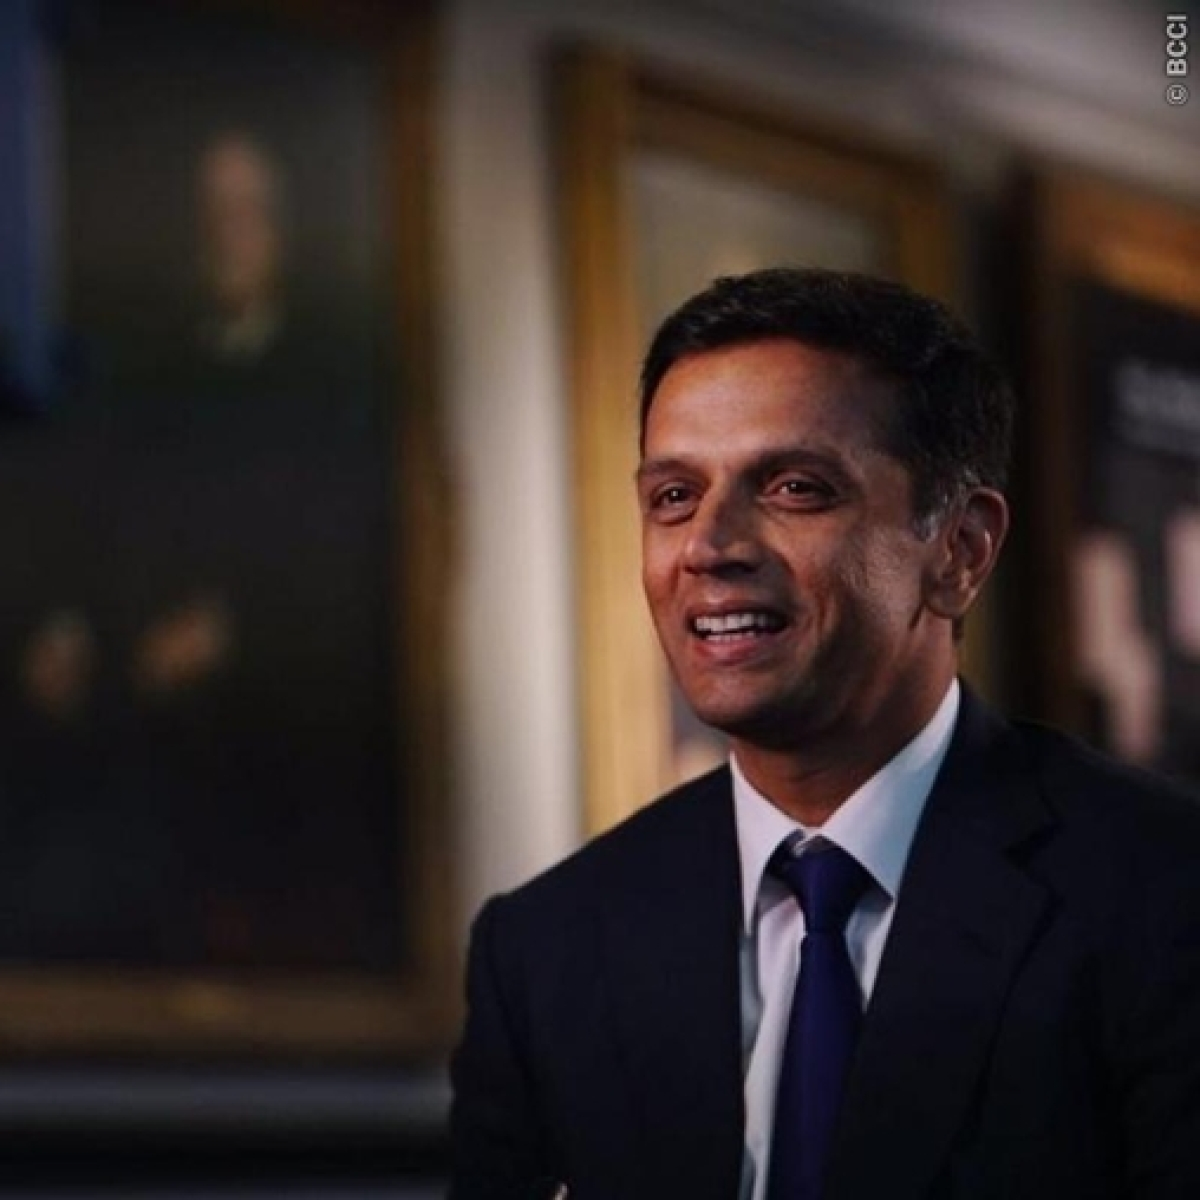 'If Rahul Dravid gets BCCI lawyer; why  didn't Sachin Tendulkar, Sourav Ganguly&V.V.S Laxman?'